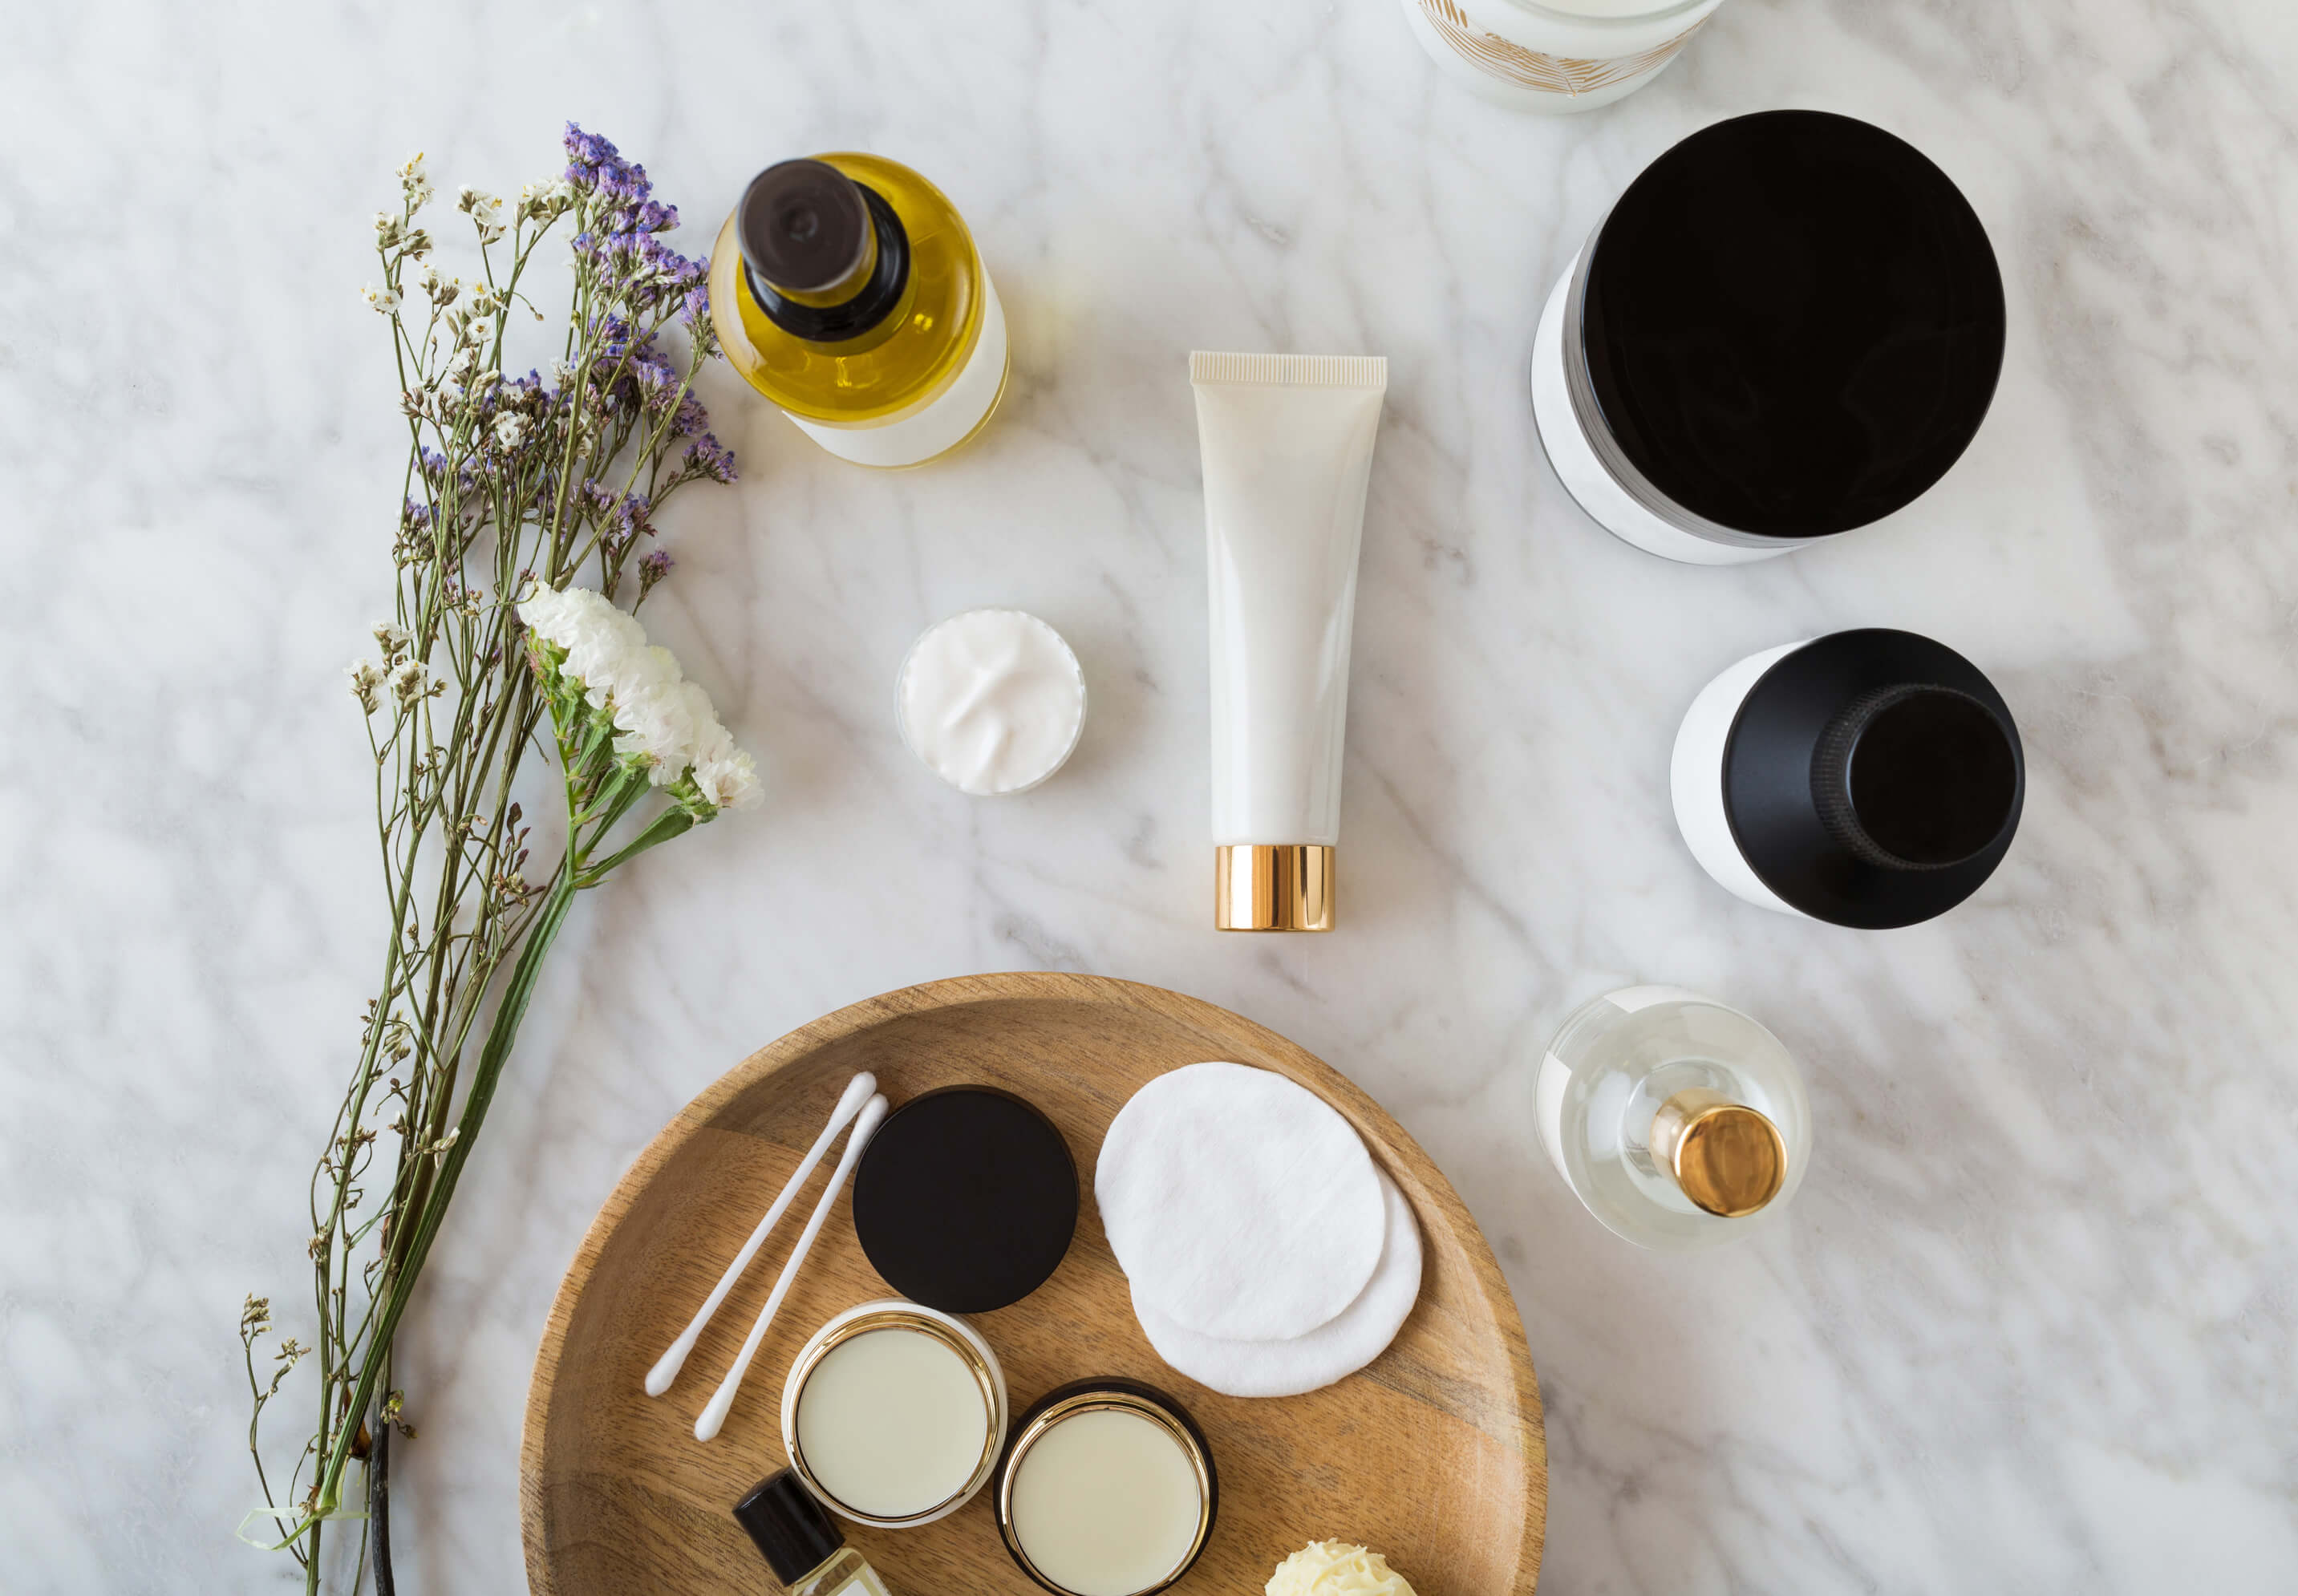 Beauty Product Flatlay on White Marble Table